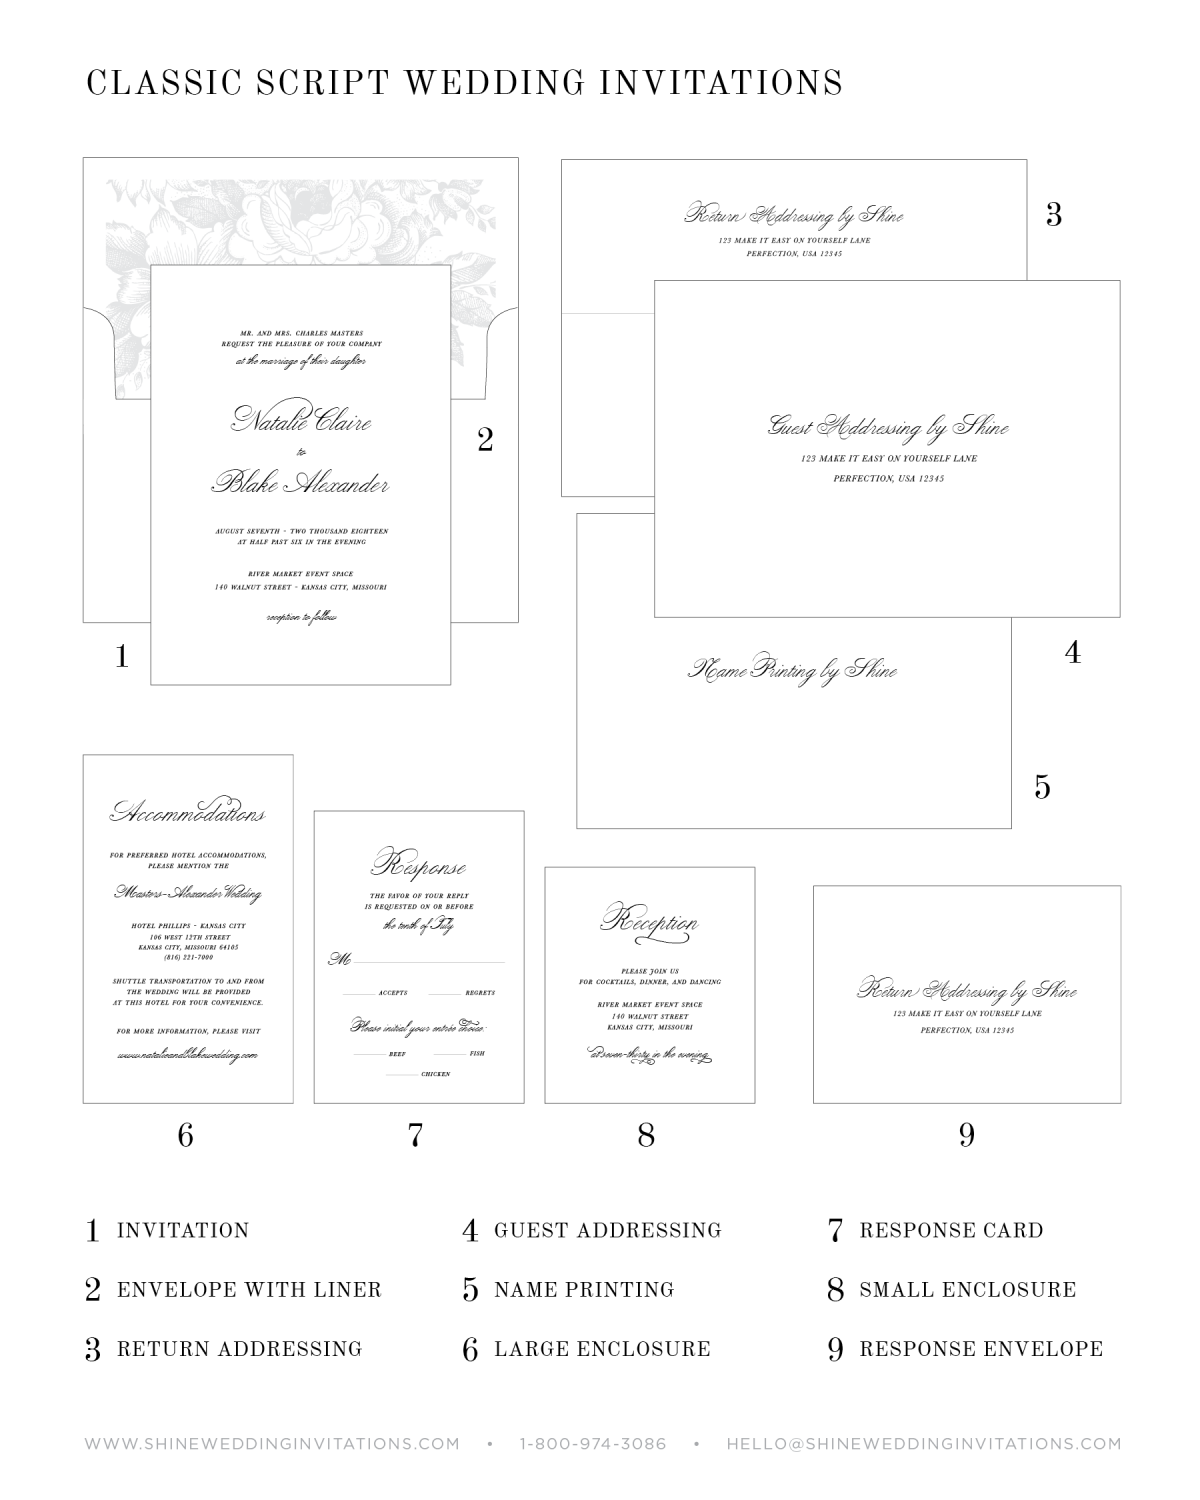 Wedding Invitation Diagram and Guide